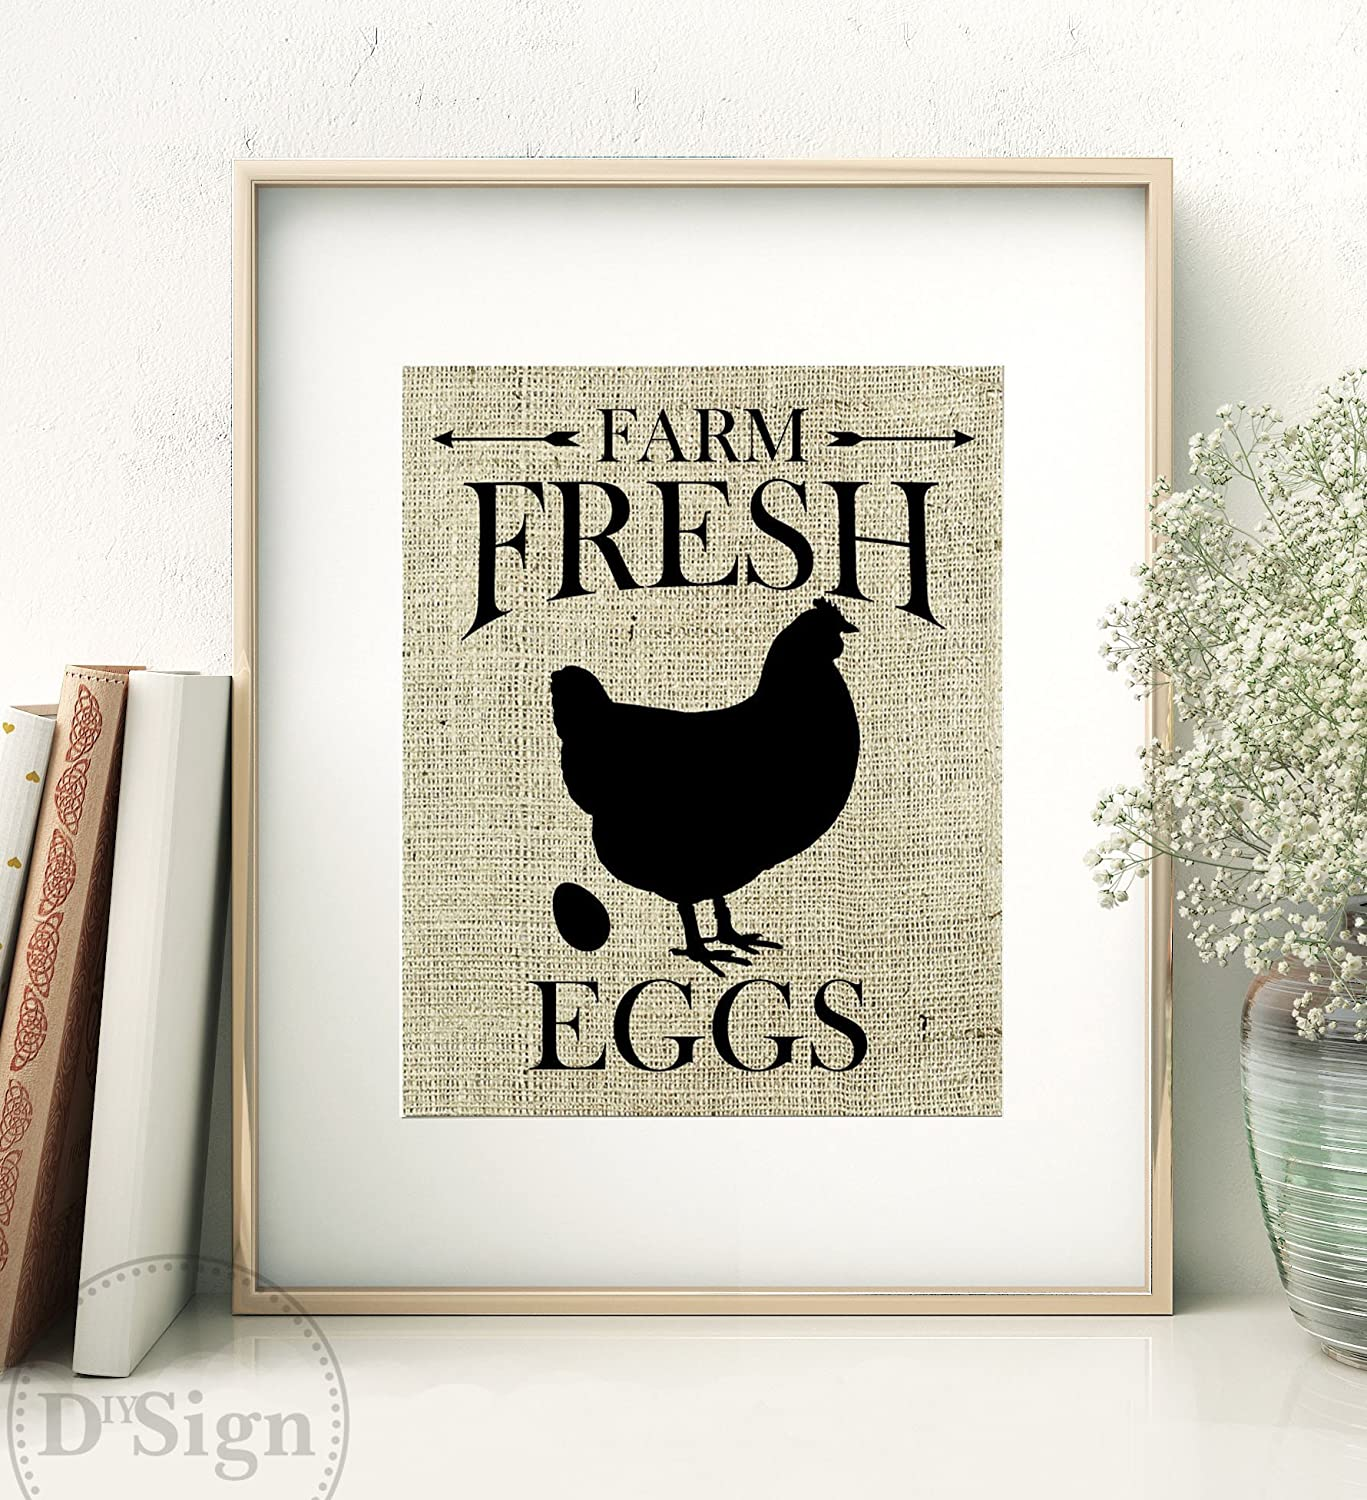 Amazon.com: Rustic Farmhouse Wall Decor, Burlap Sign, Farm Fresh ...